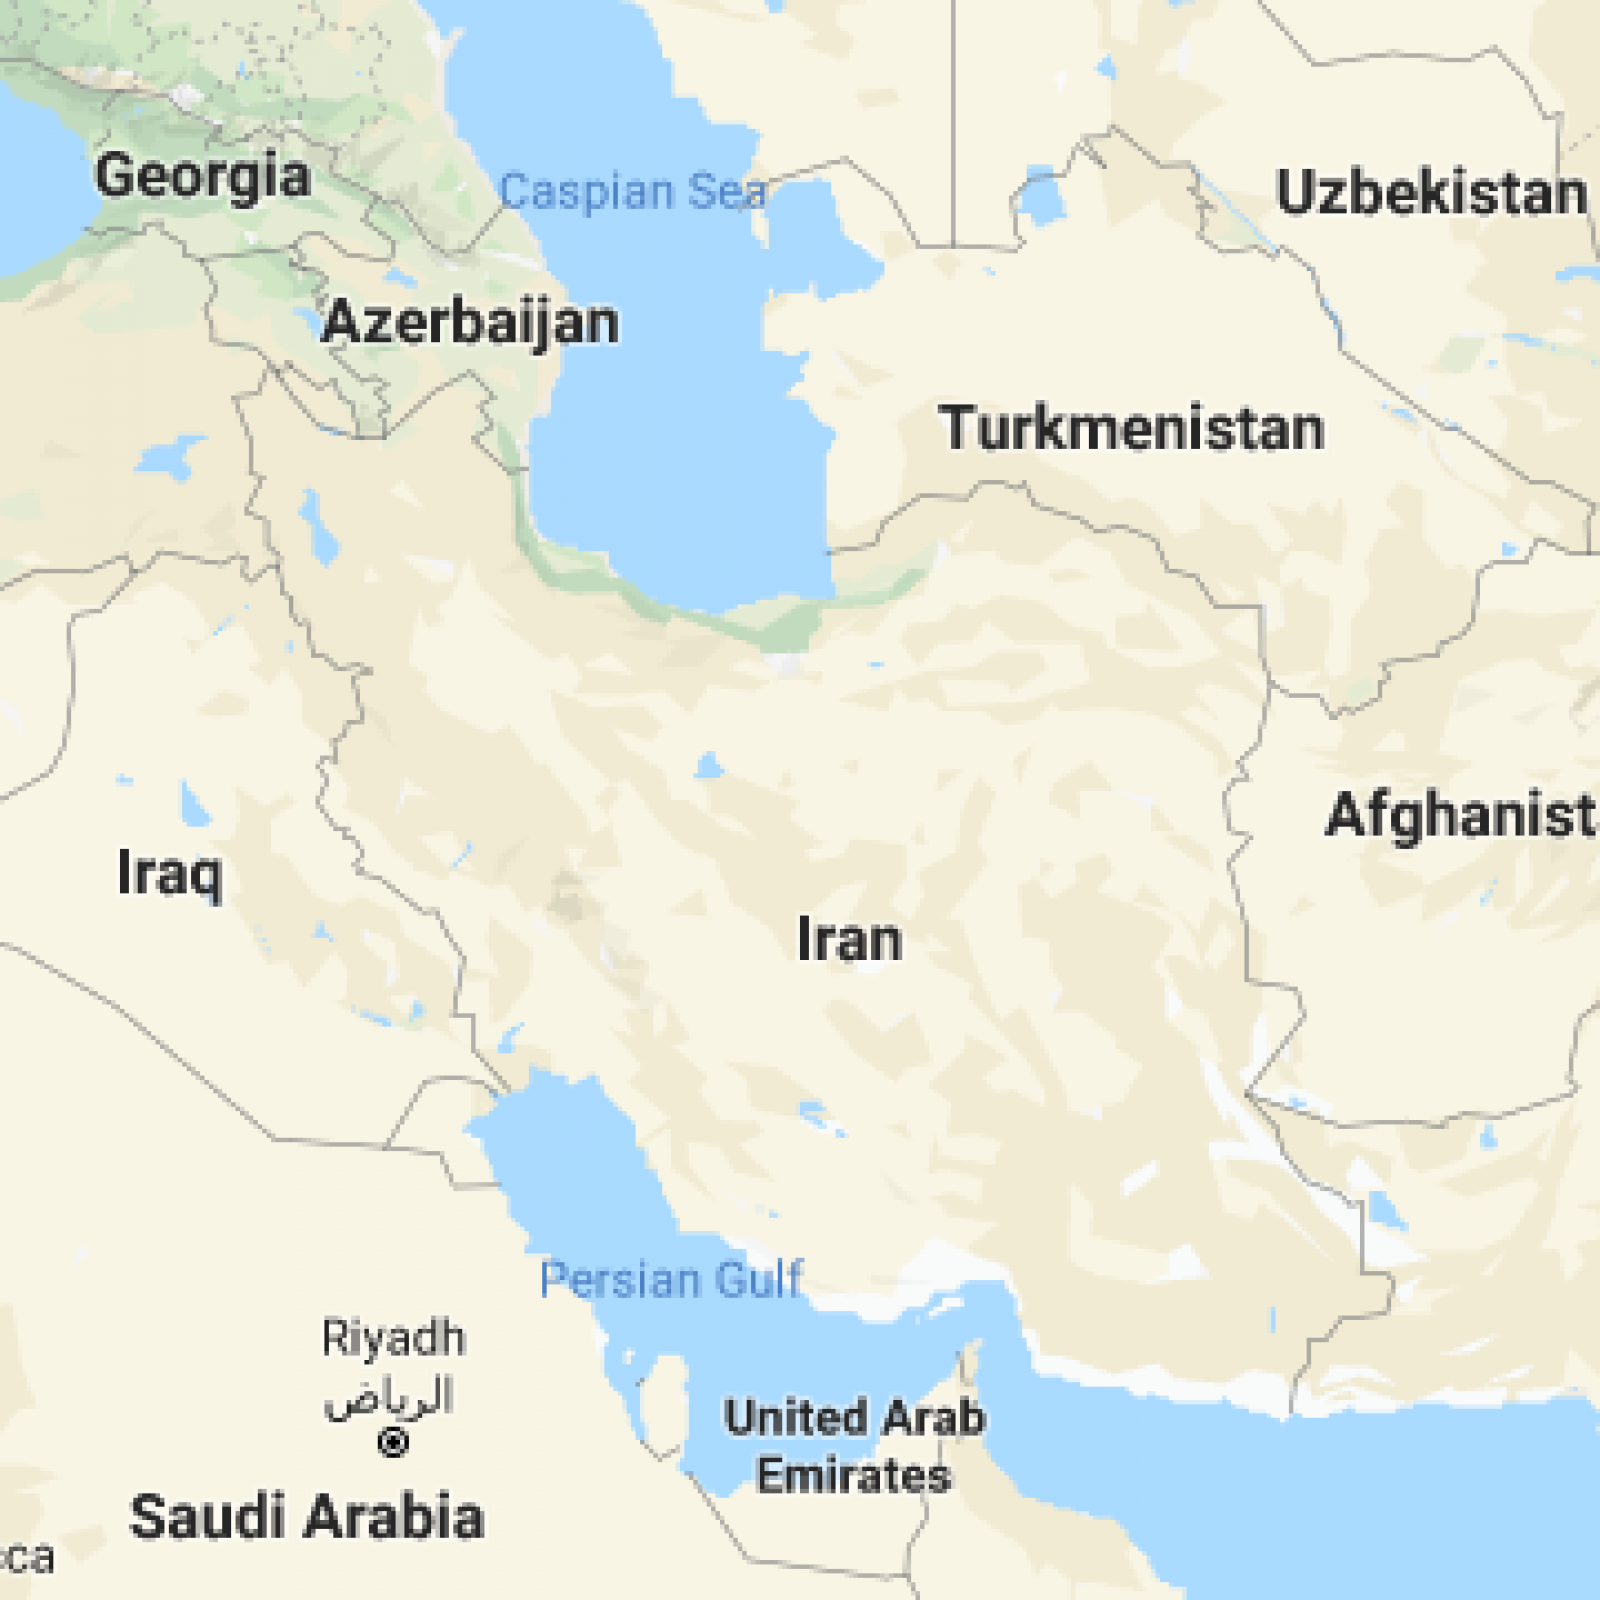 Iran On World Map 77% Of Americans Surveyed Can't Find Iran On A World Map